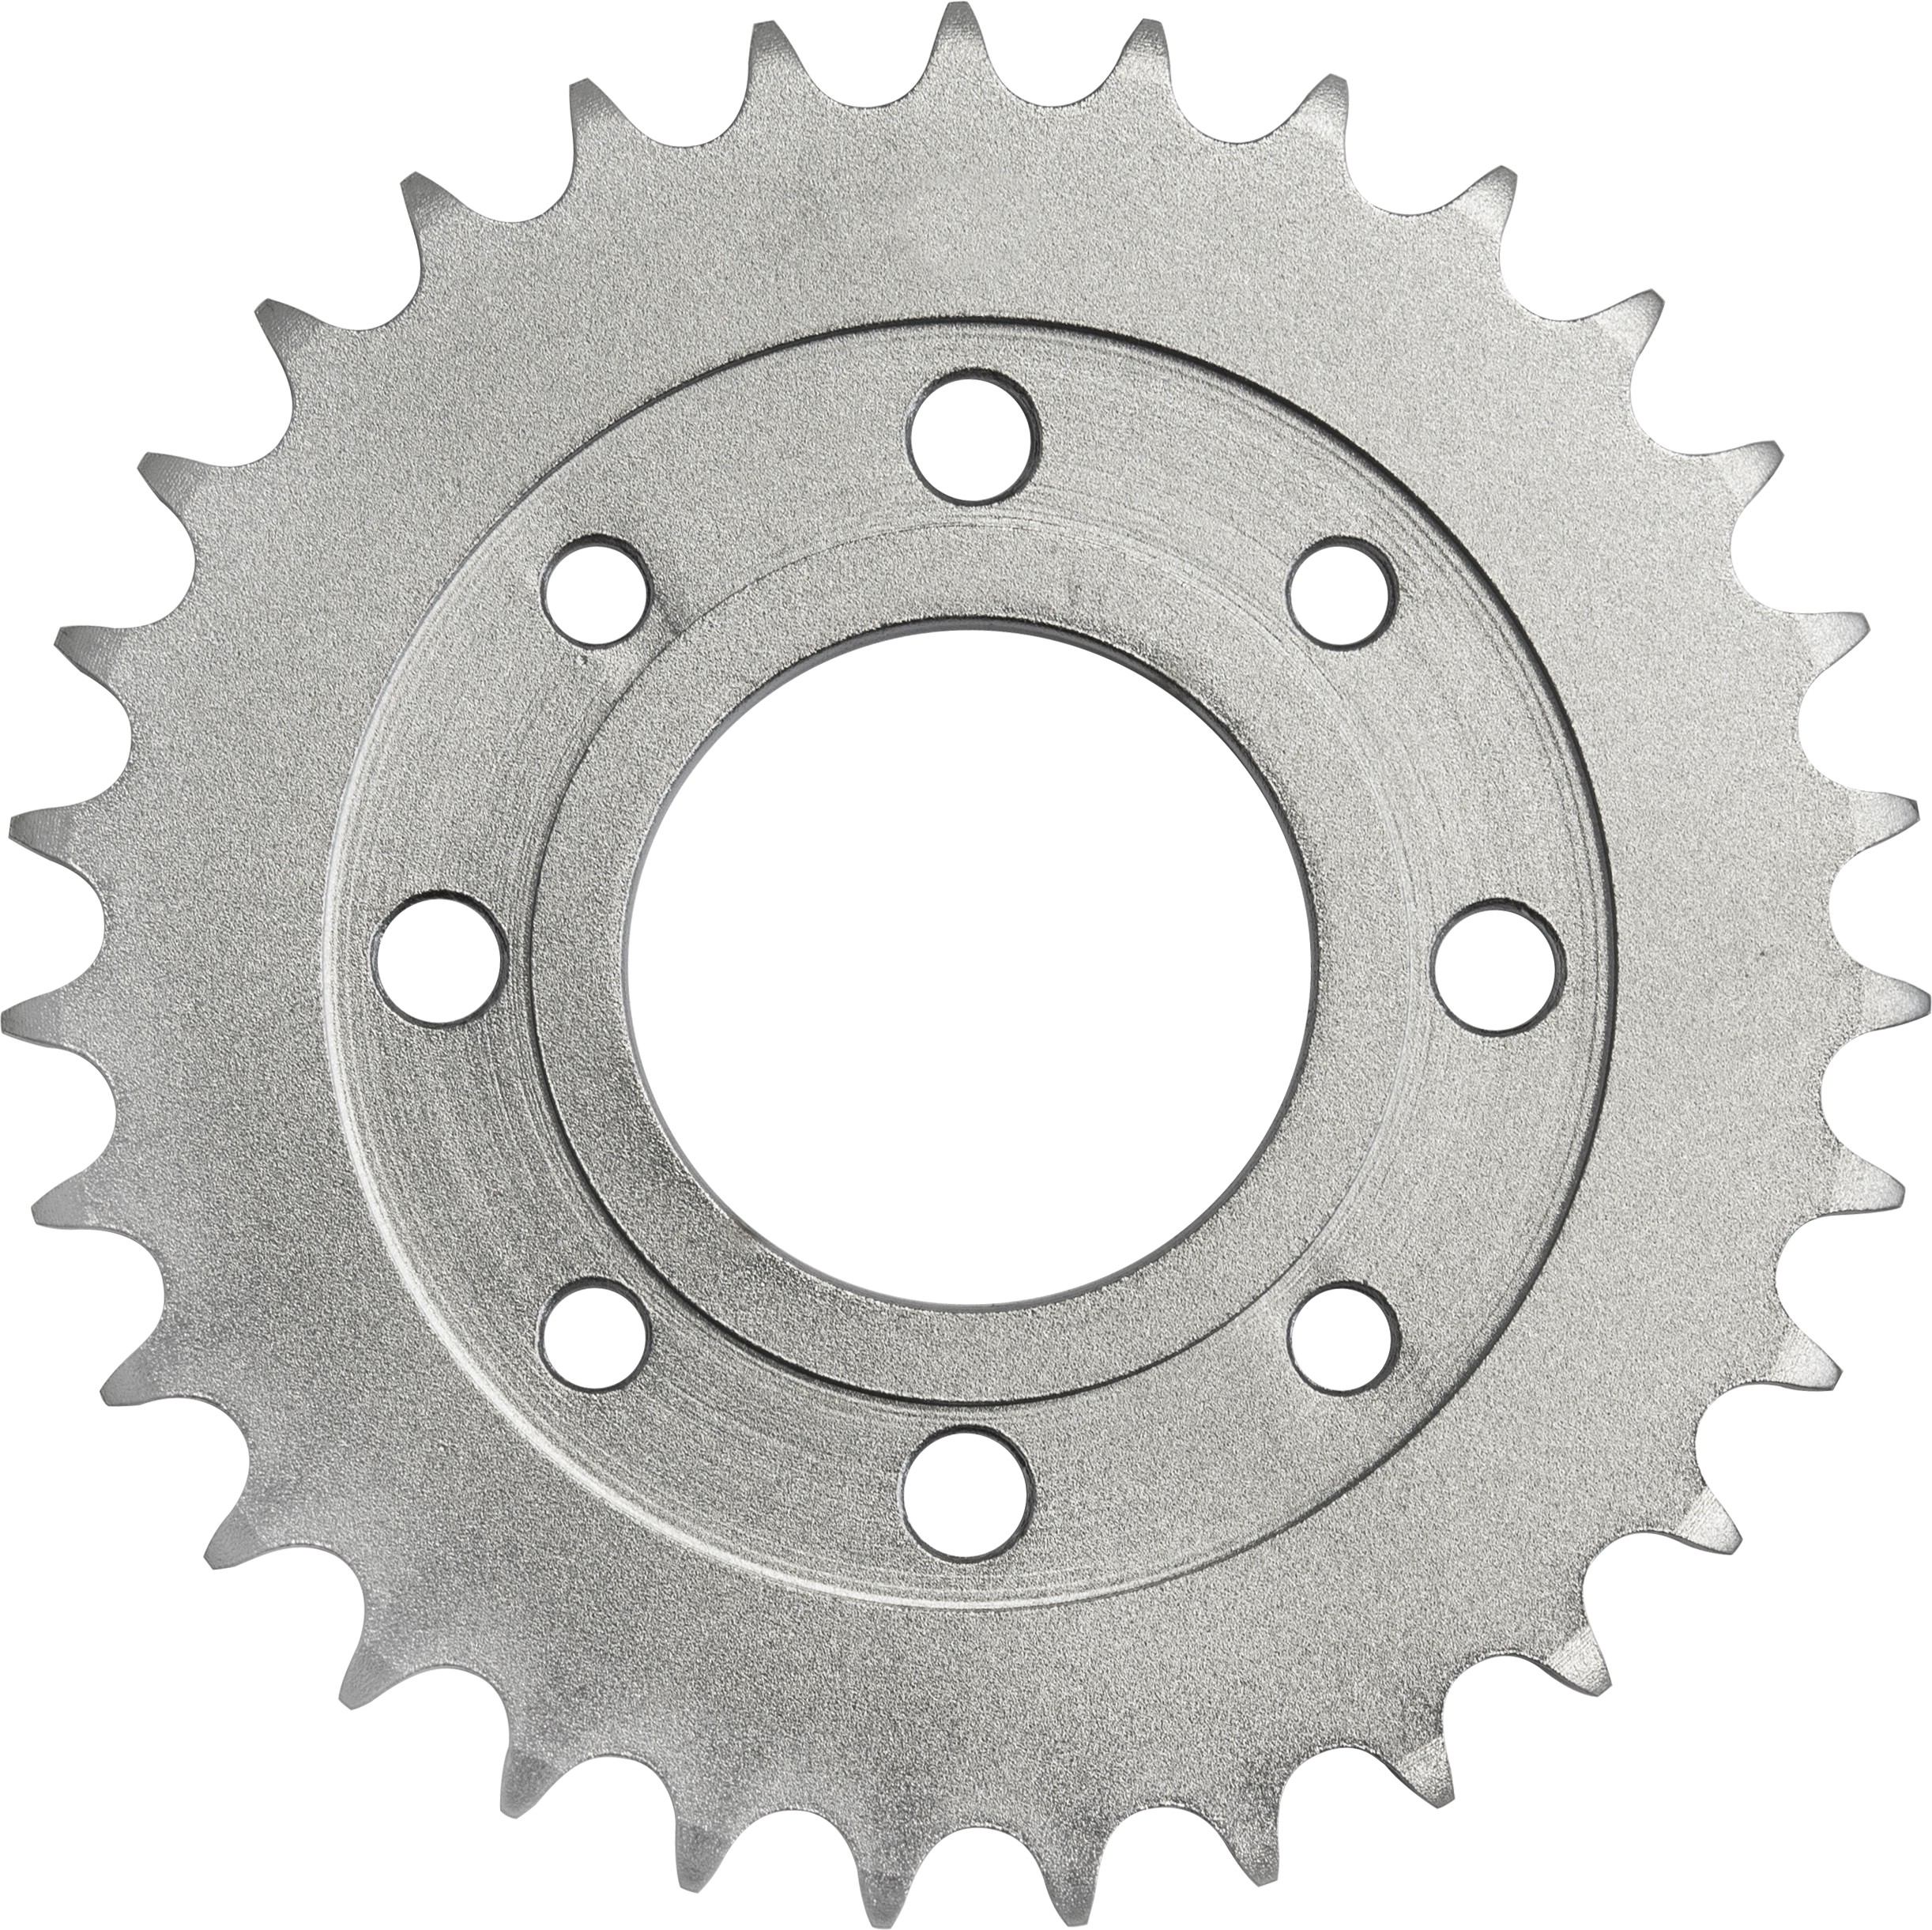 279-39 REAR SPROCKET HONDA MBX125 84-86, CMX250 REBEL 2000